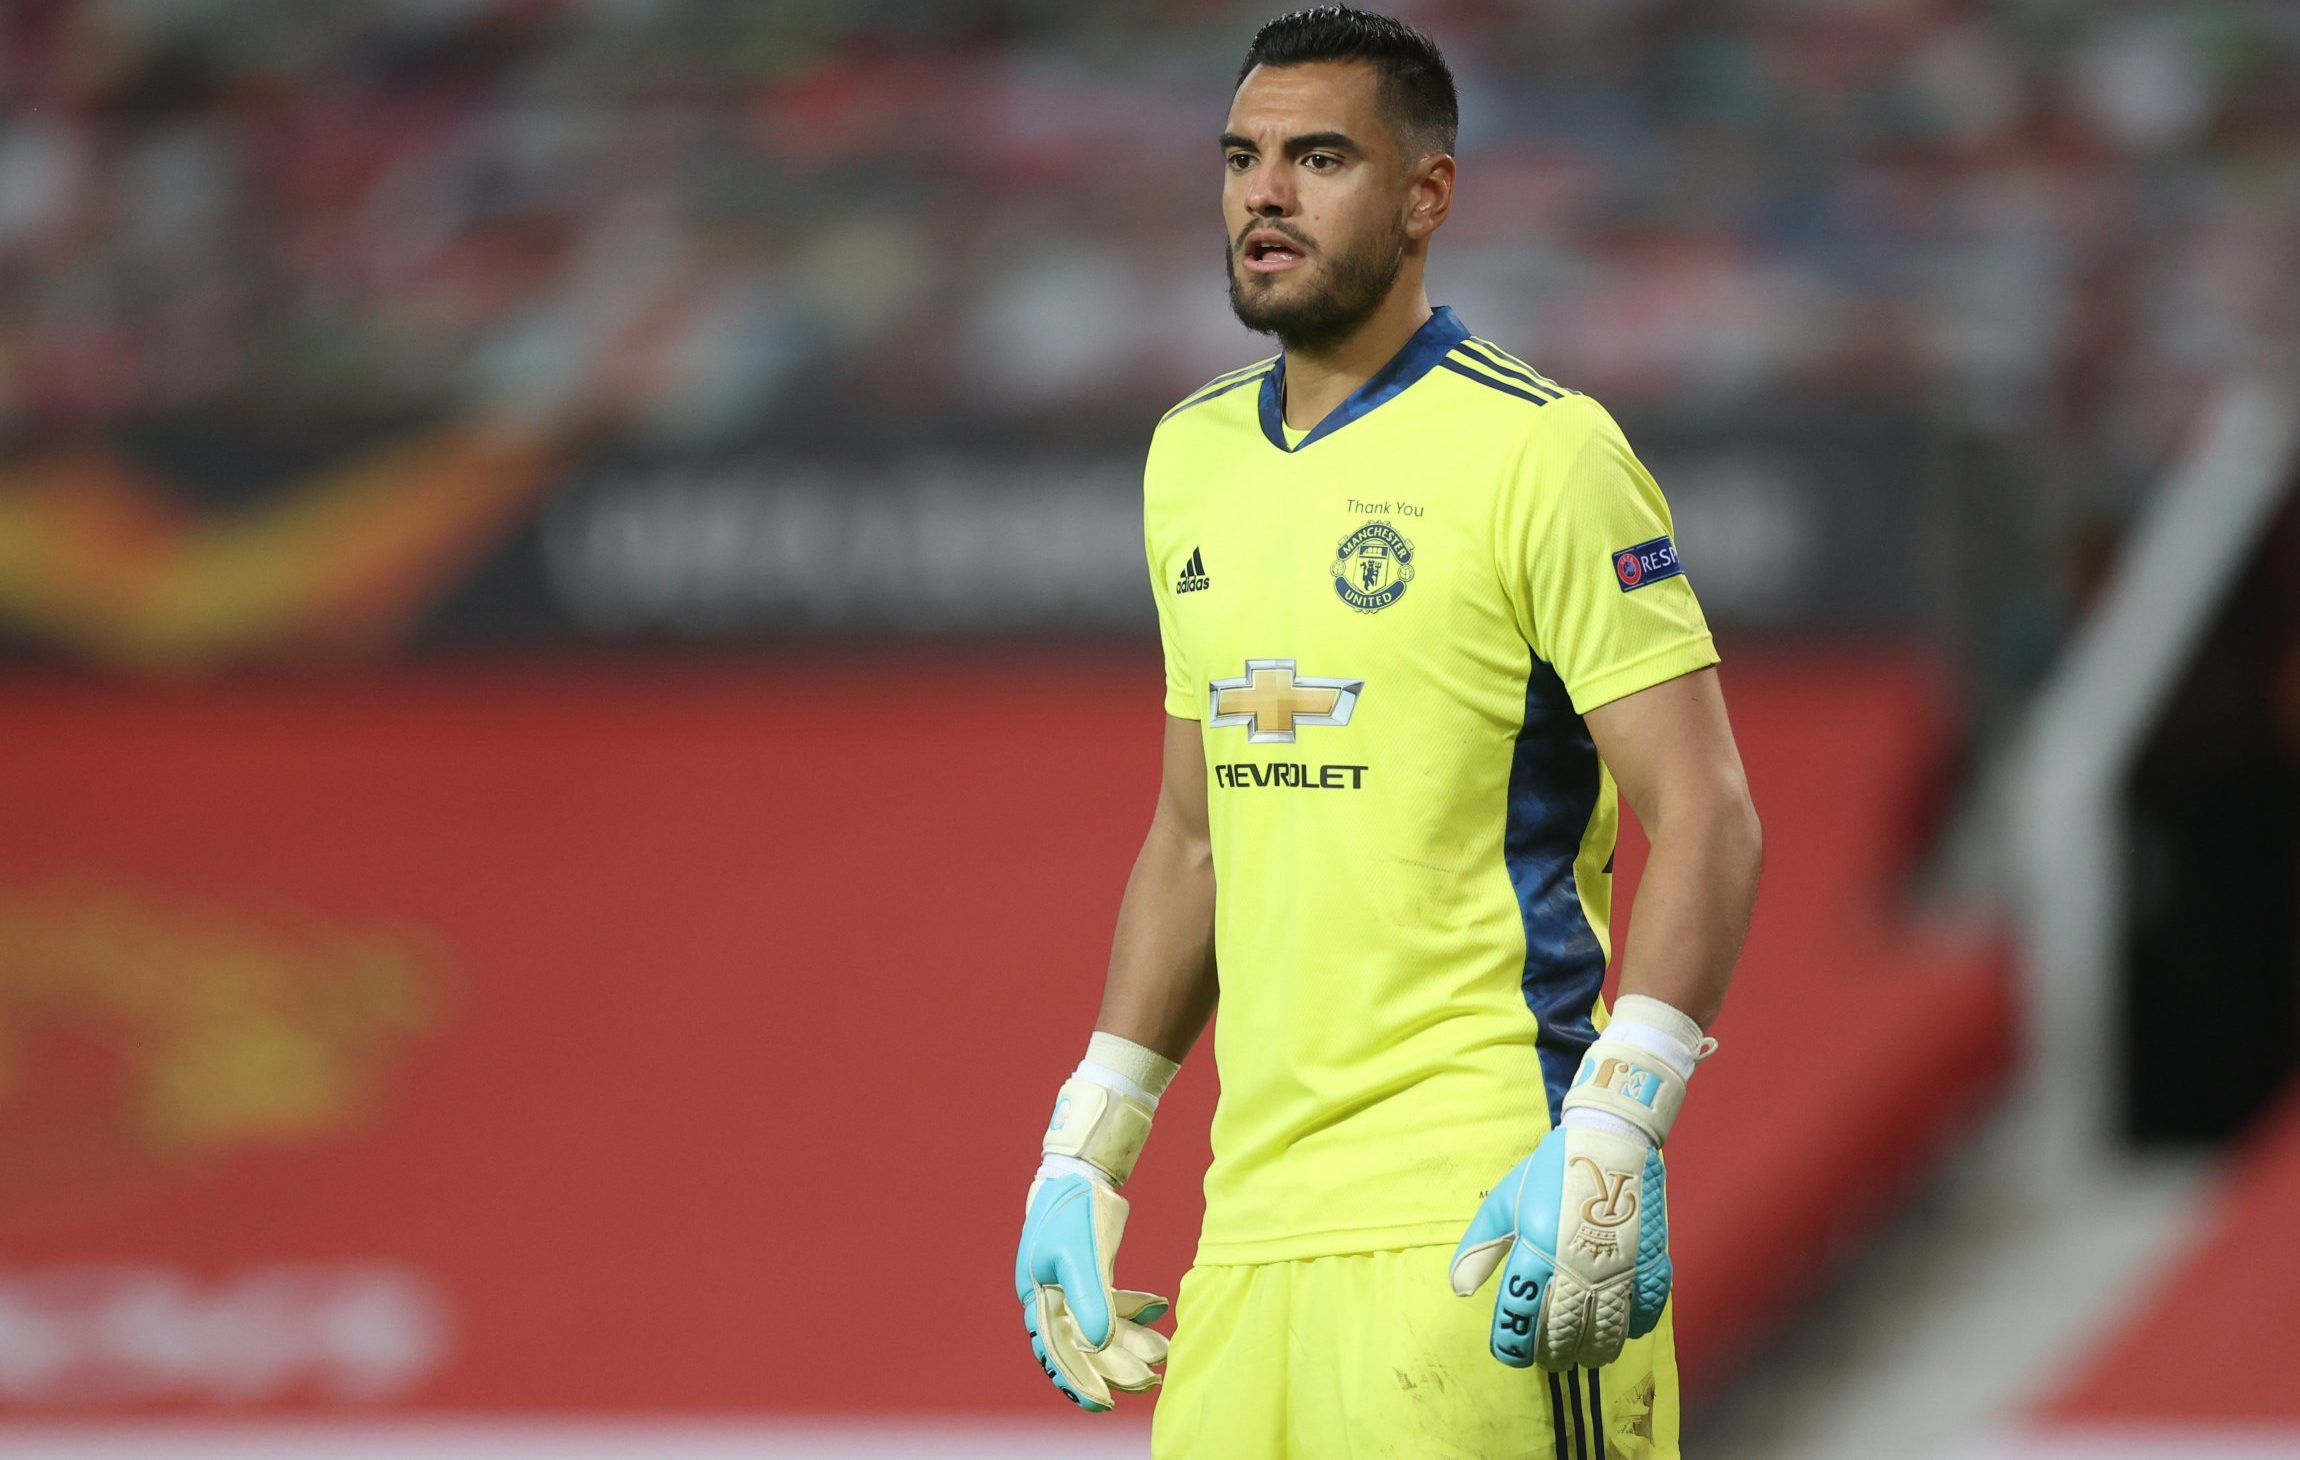 Everton are interested in loaning Manchester Untied goalkeeper Sergio Romero